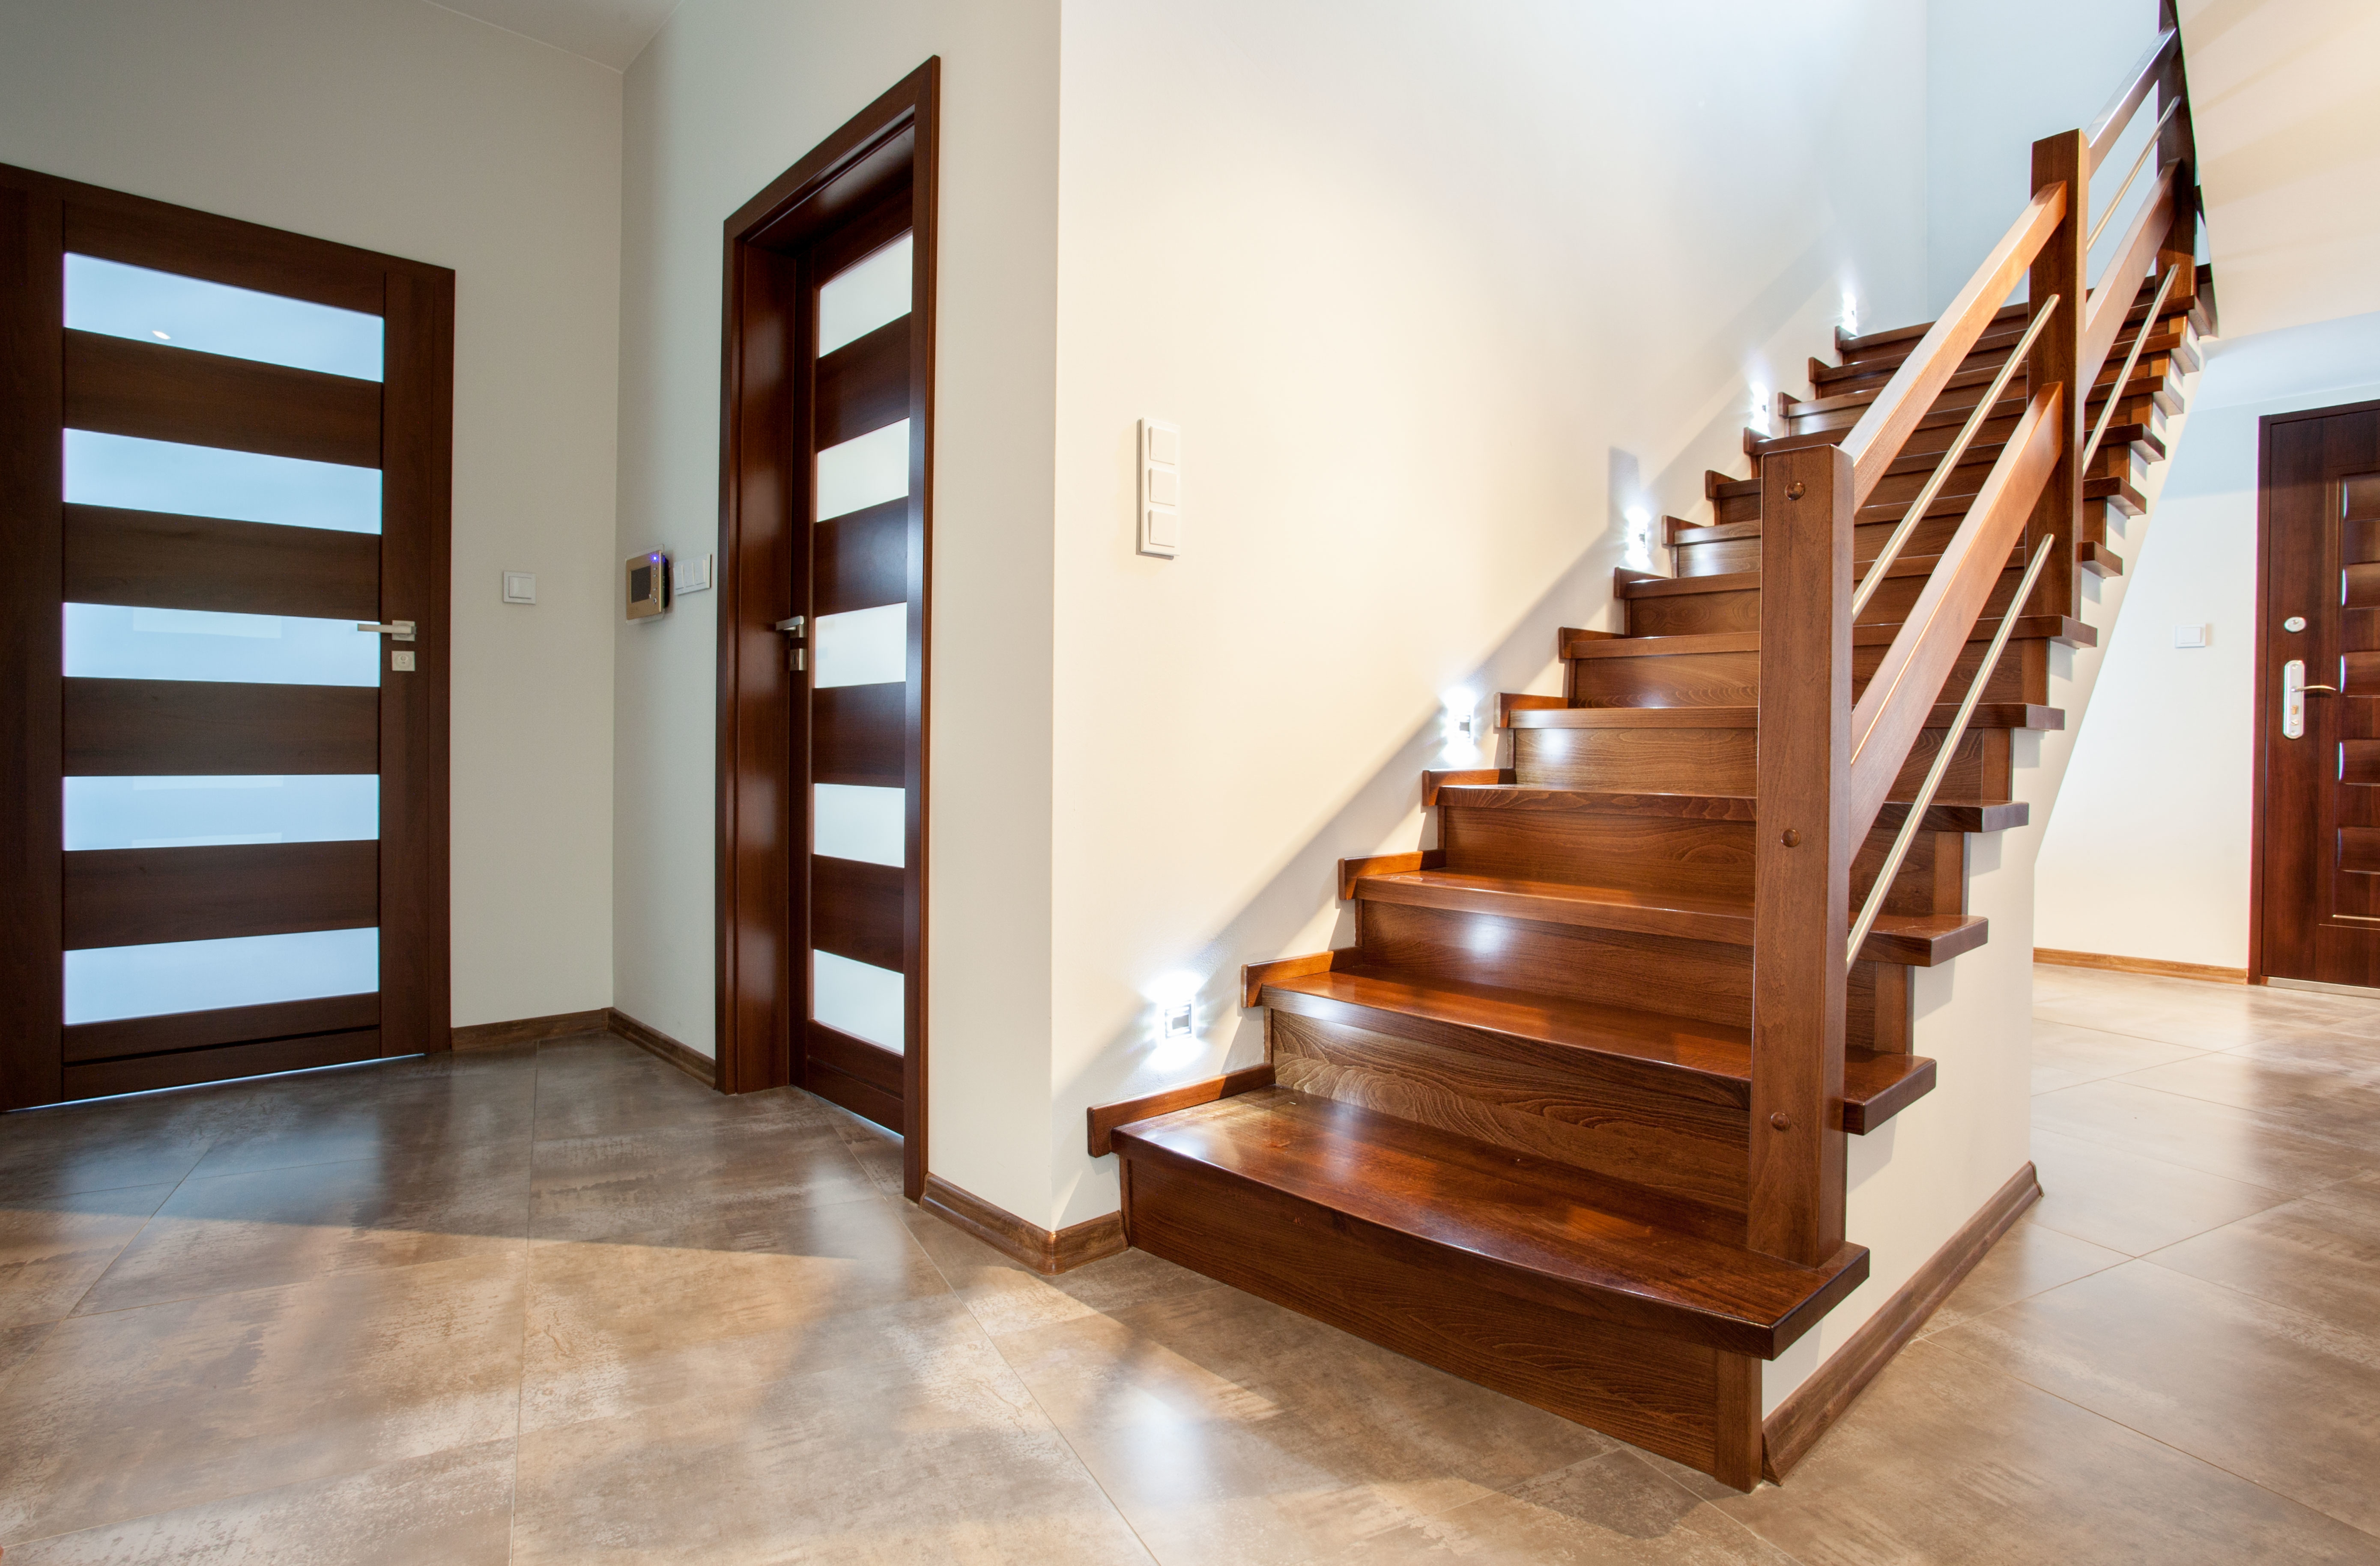 Staircase Railing Styles That Will Elevate Your Design Merit | Designer Handrails For Stairs | Wood | Wrought Iron Balusters | Railing Ideas | Interior | Stair Parts